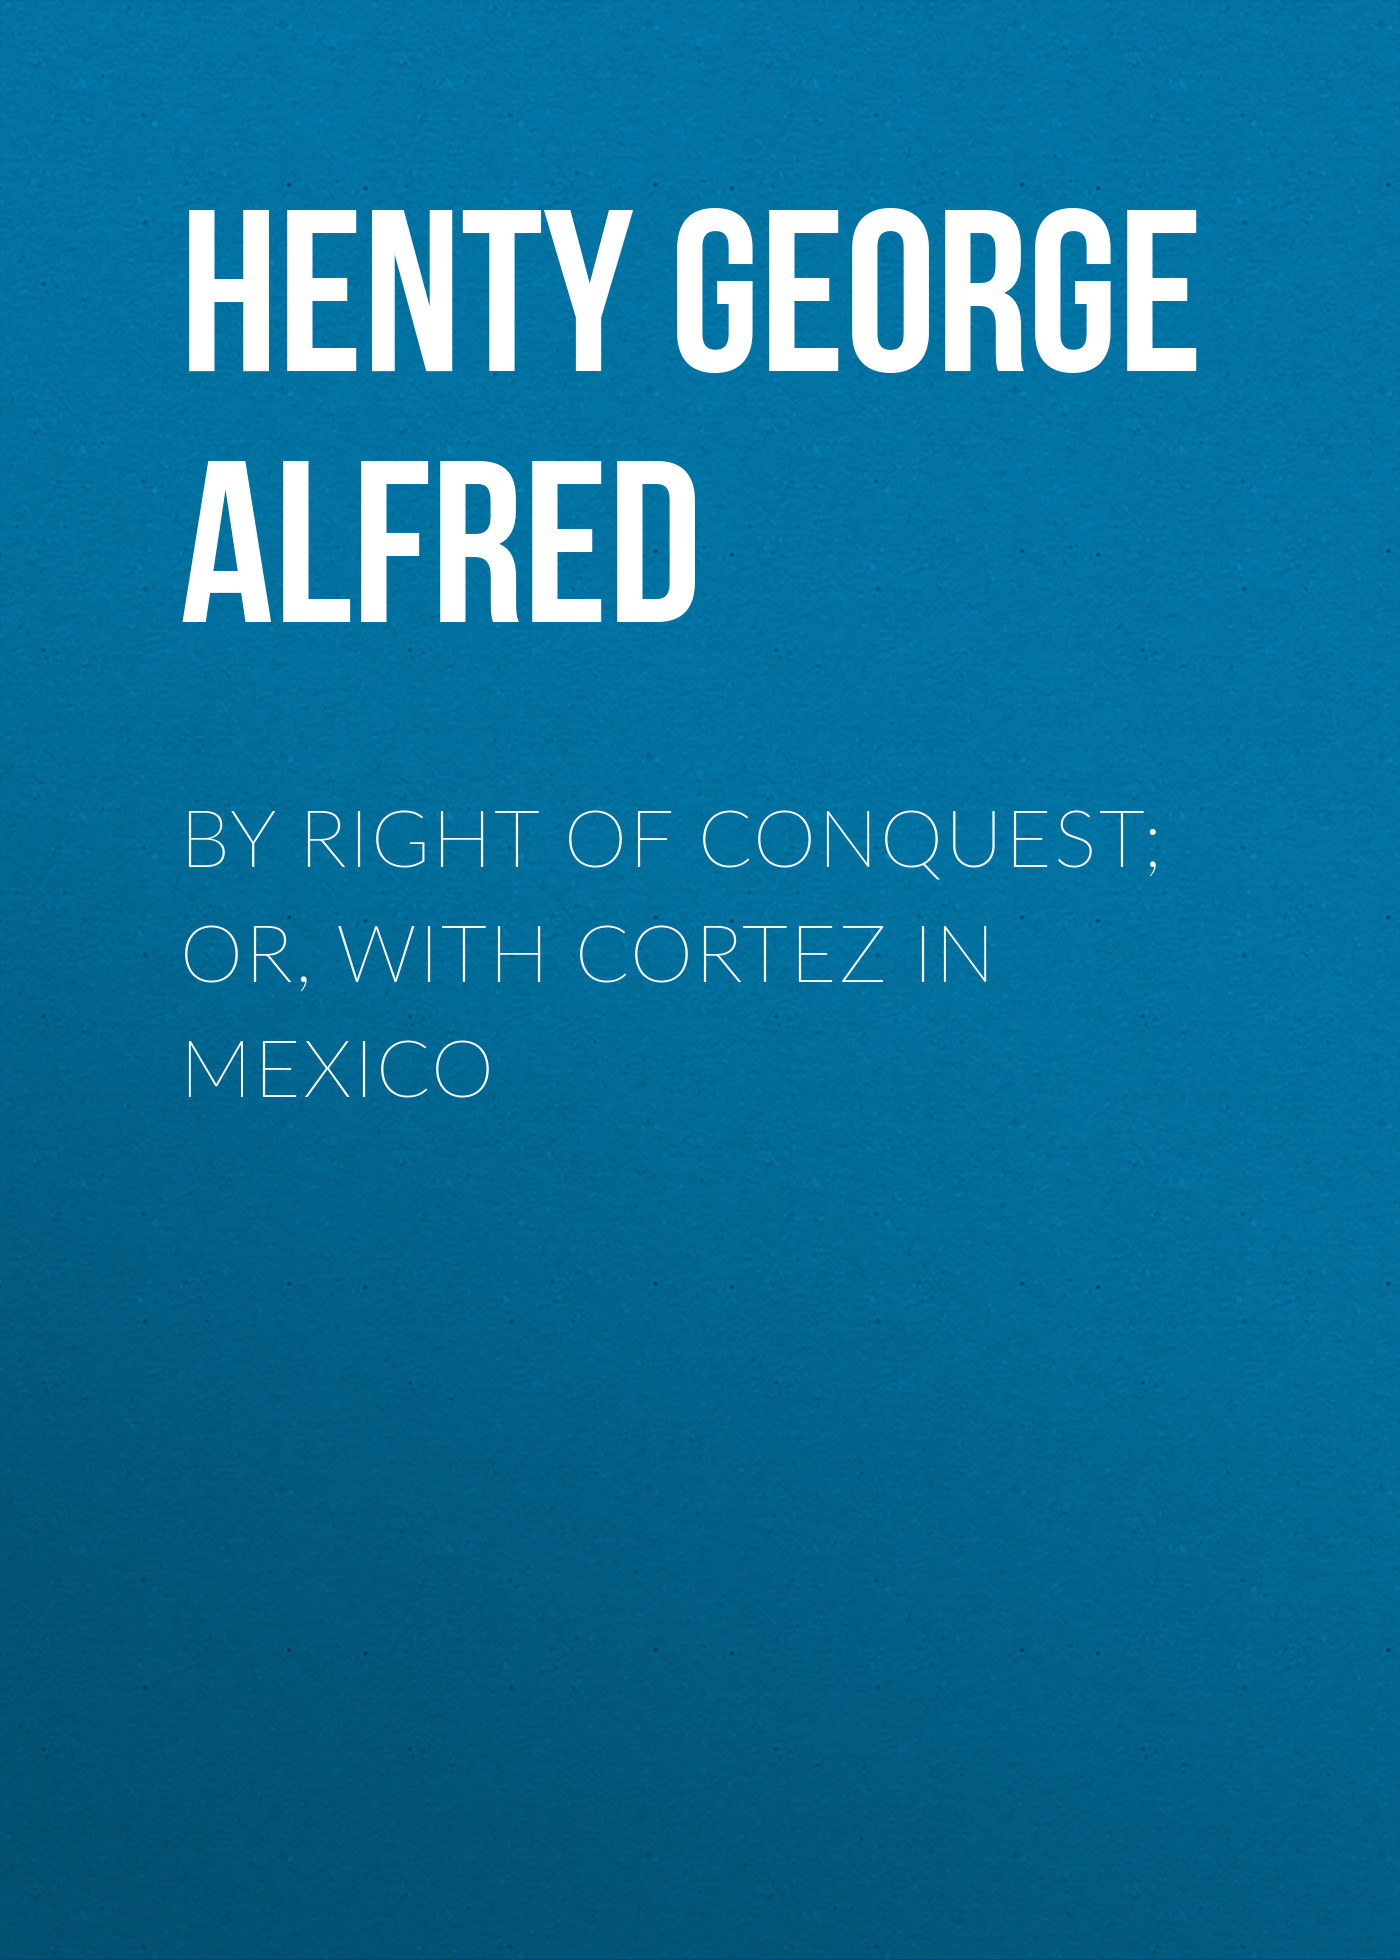 Henty George Alfred By Right of Conquest; Or, With Cortez in Mexico browne george waldo where duty called or in honor bound